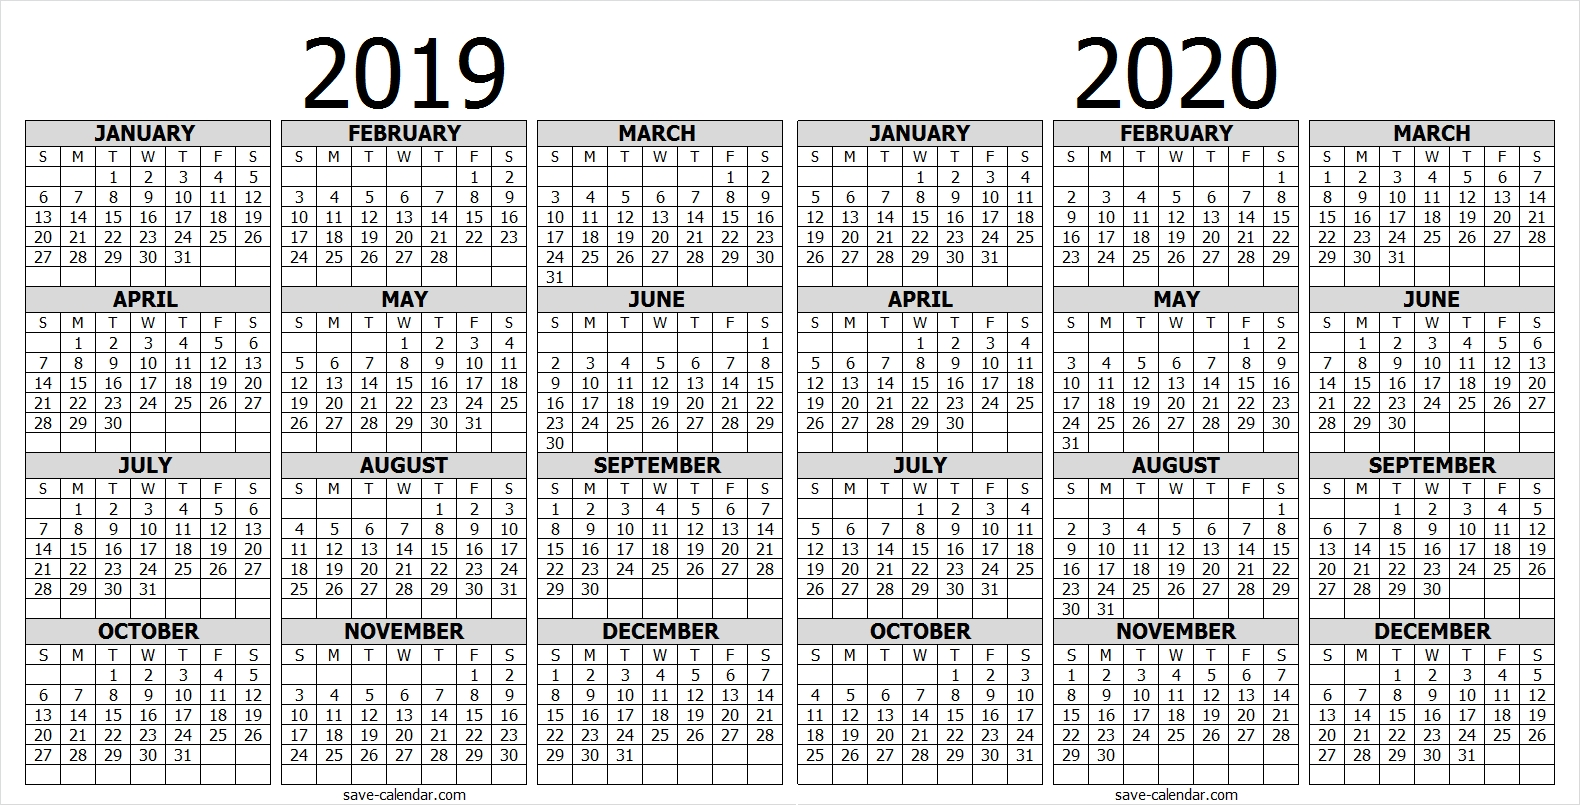 Calendar 2019 2020 One Page | 2019 Calendar | Free Calendar in 2019-2020 Printable Calendar One Page